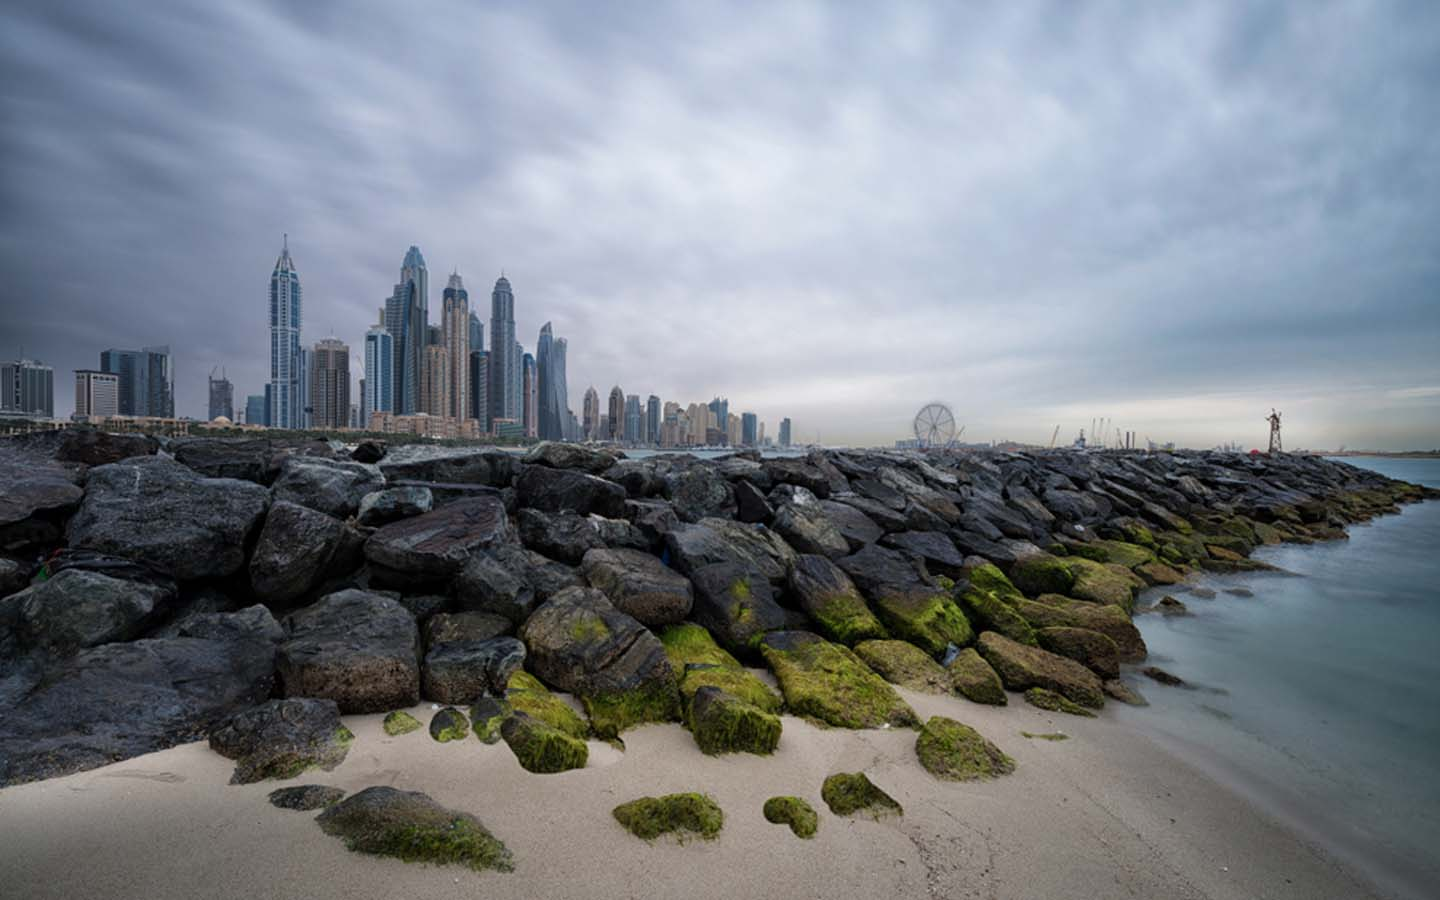 Dubai shore and skyline with cloud cover